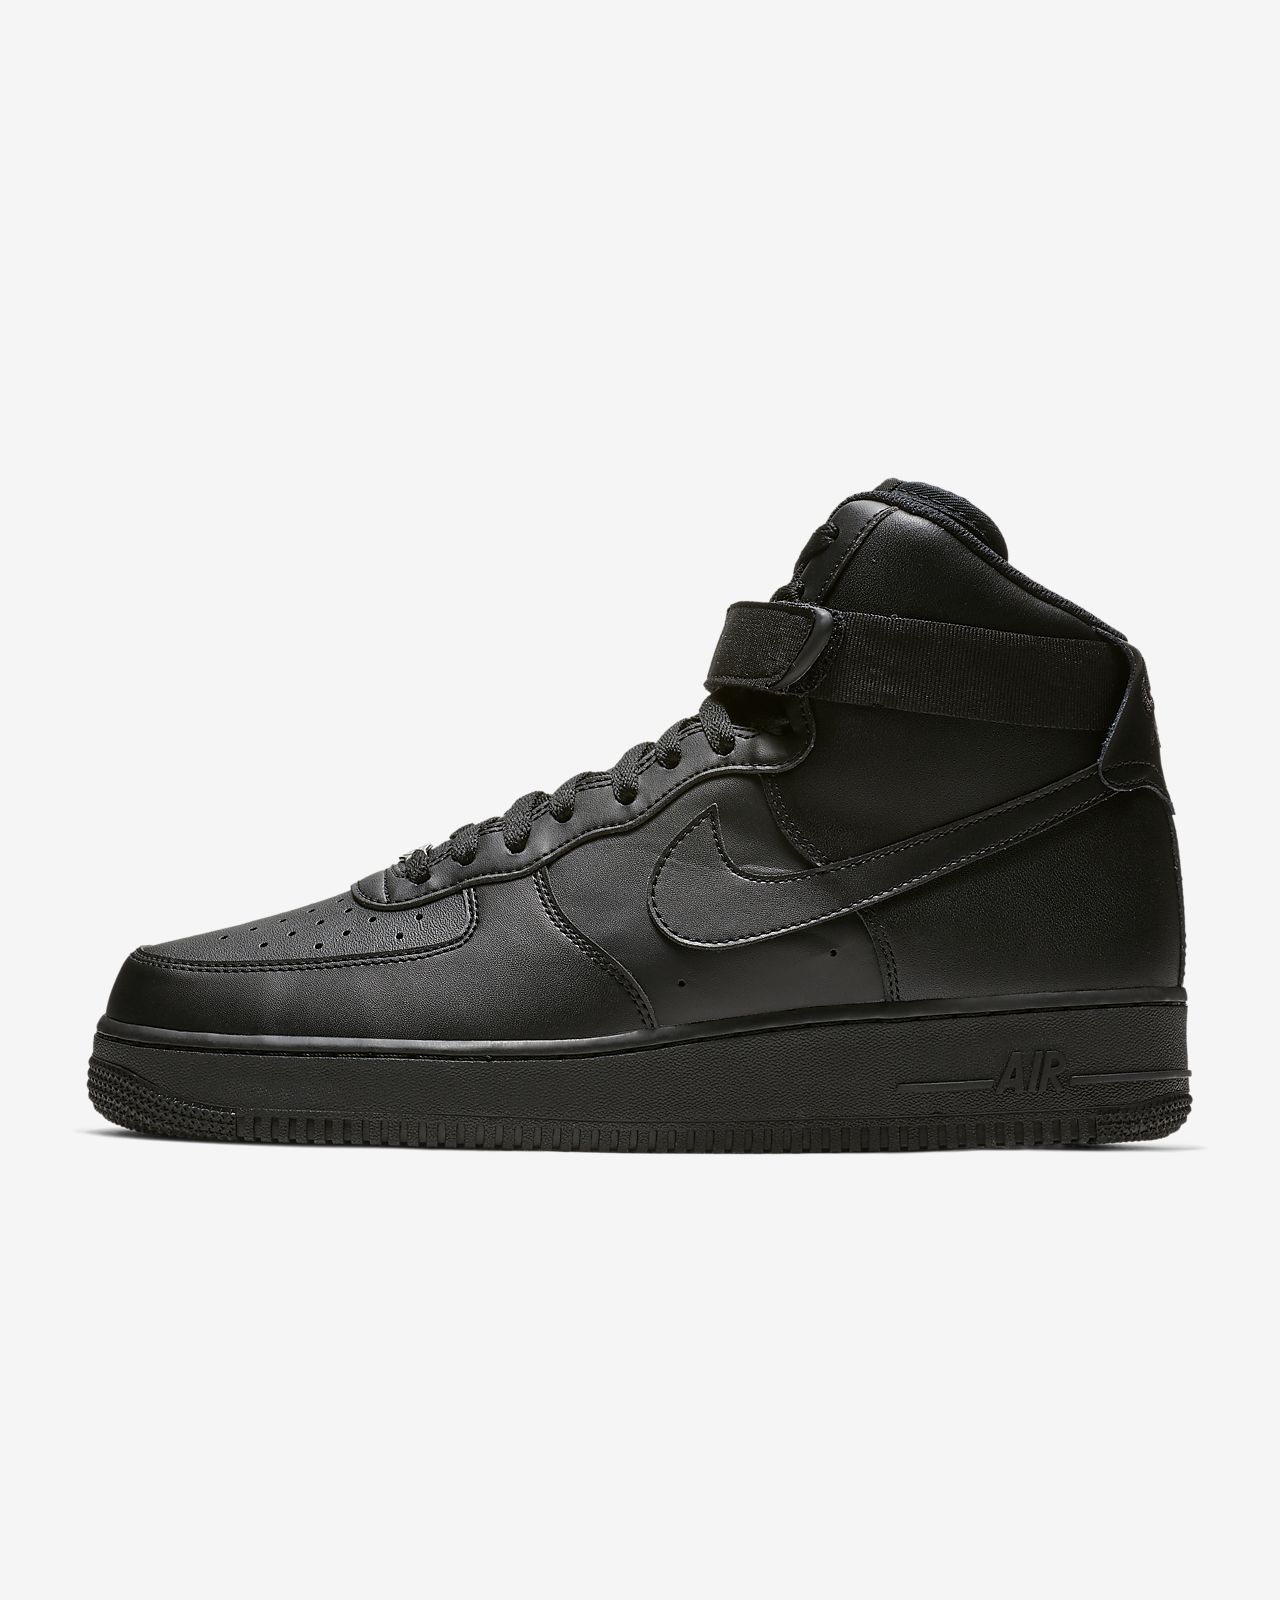 4c83d81cb0d Nike Air Force 1 High 07 Men s Shoe. Nike.com